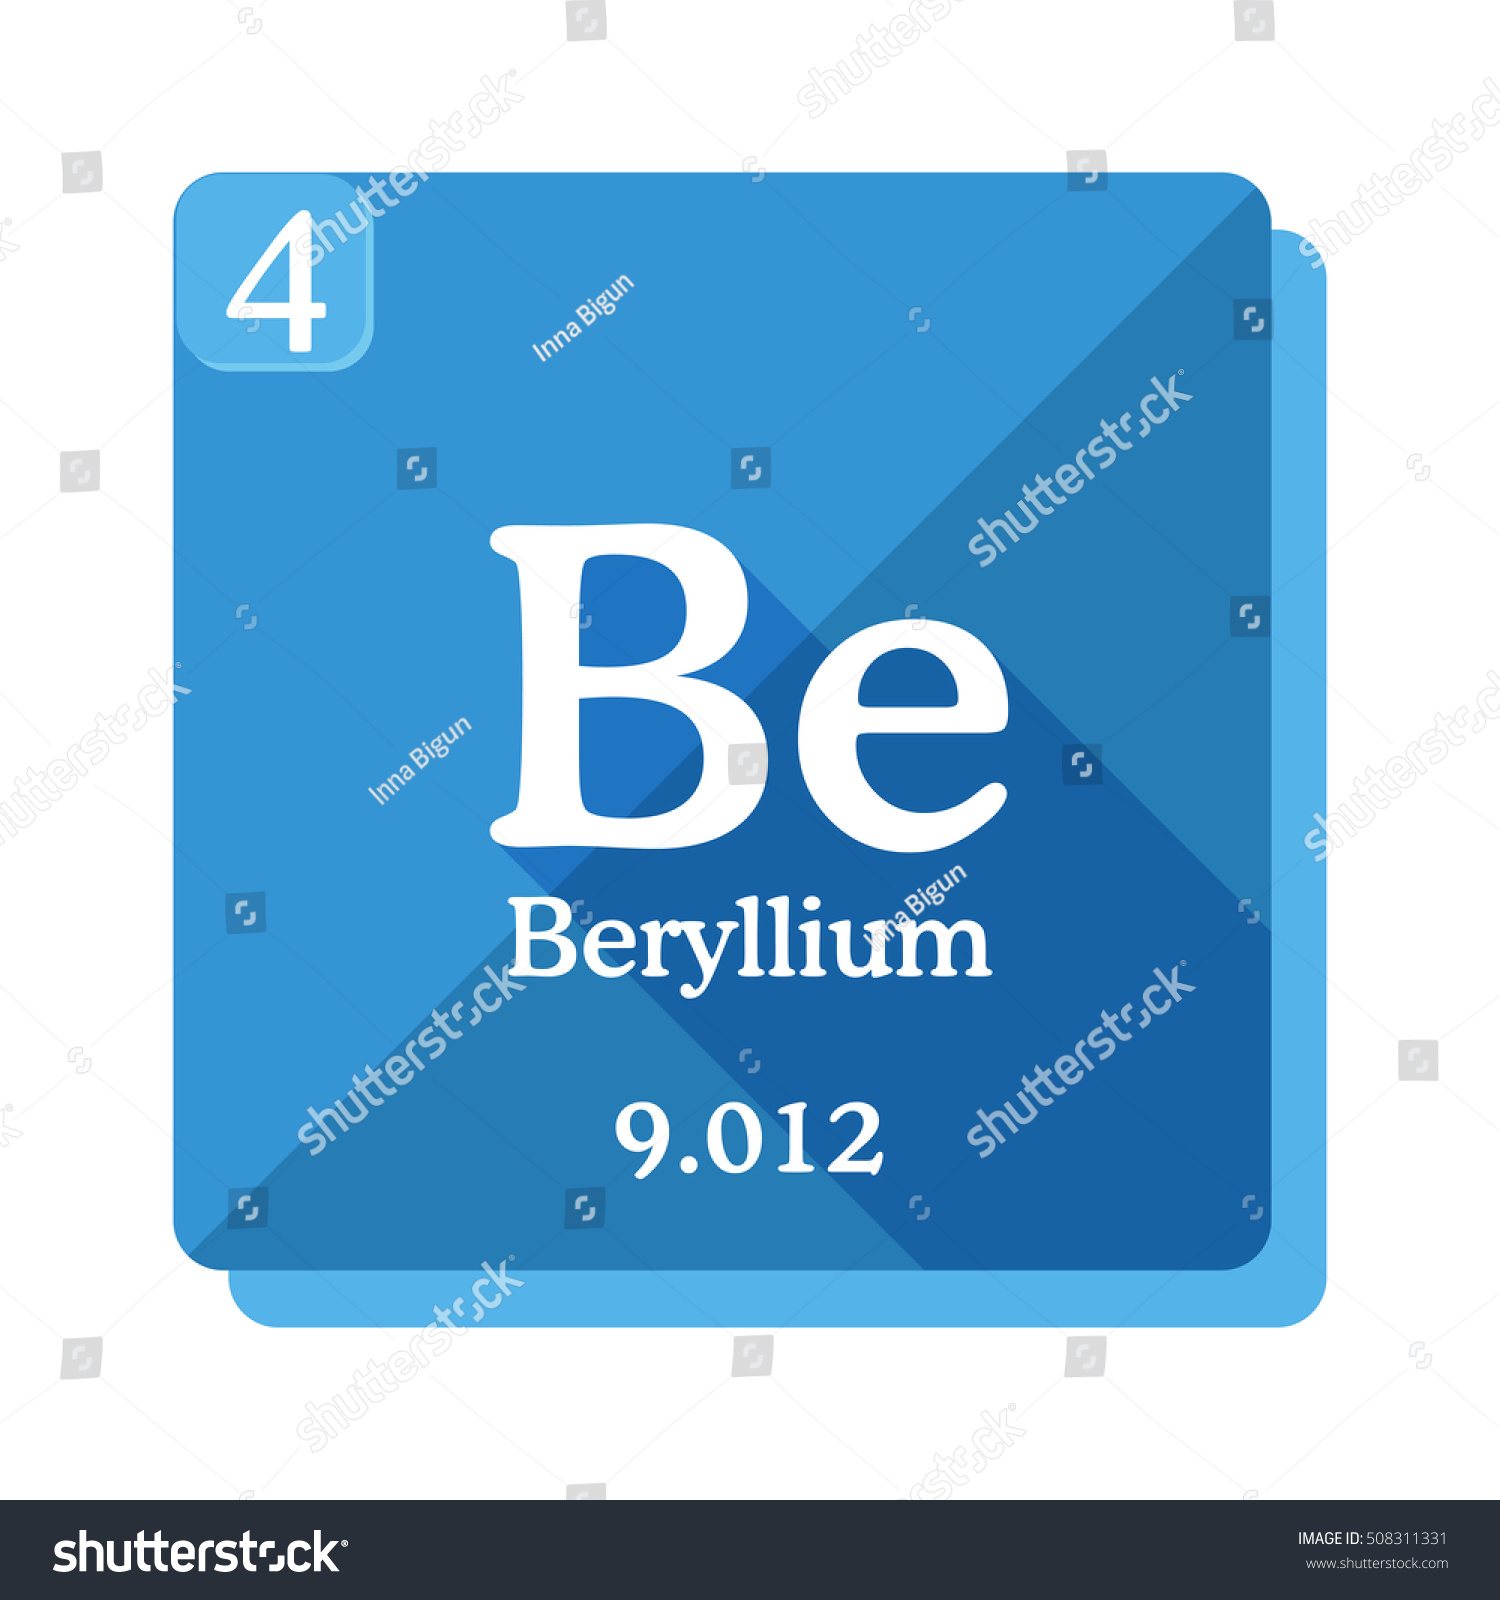 Beryllium chemical element periodic table elements stock vector beryllium chemical element periodic table of the elements beryllium icon on blue background buycottarizona Image collections